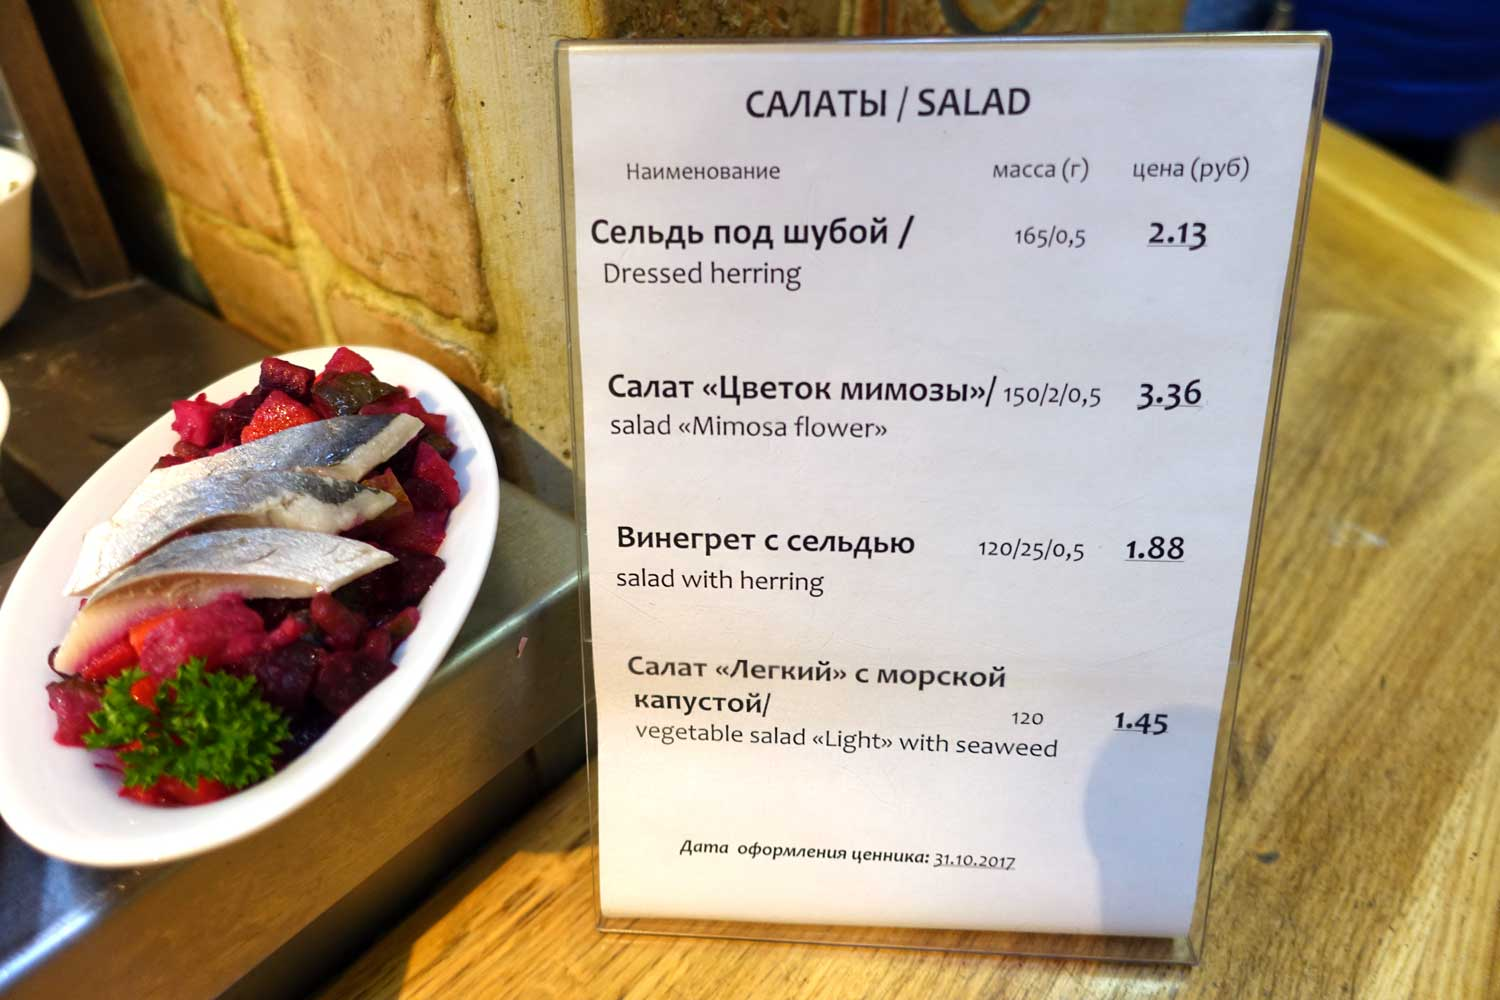 Belarus Food in Minsk Restaurants - Lido salad